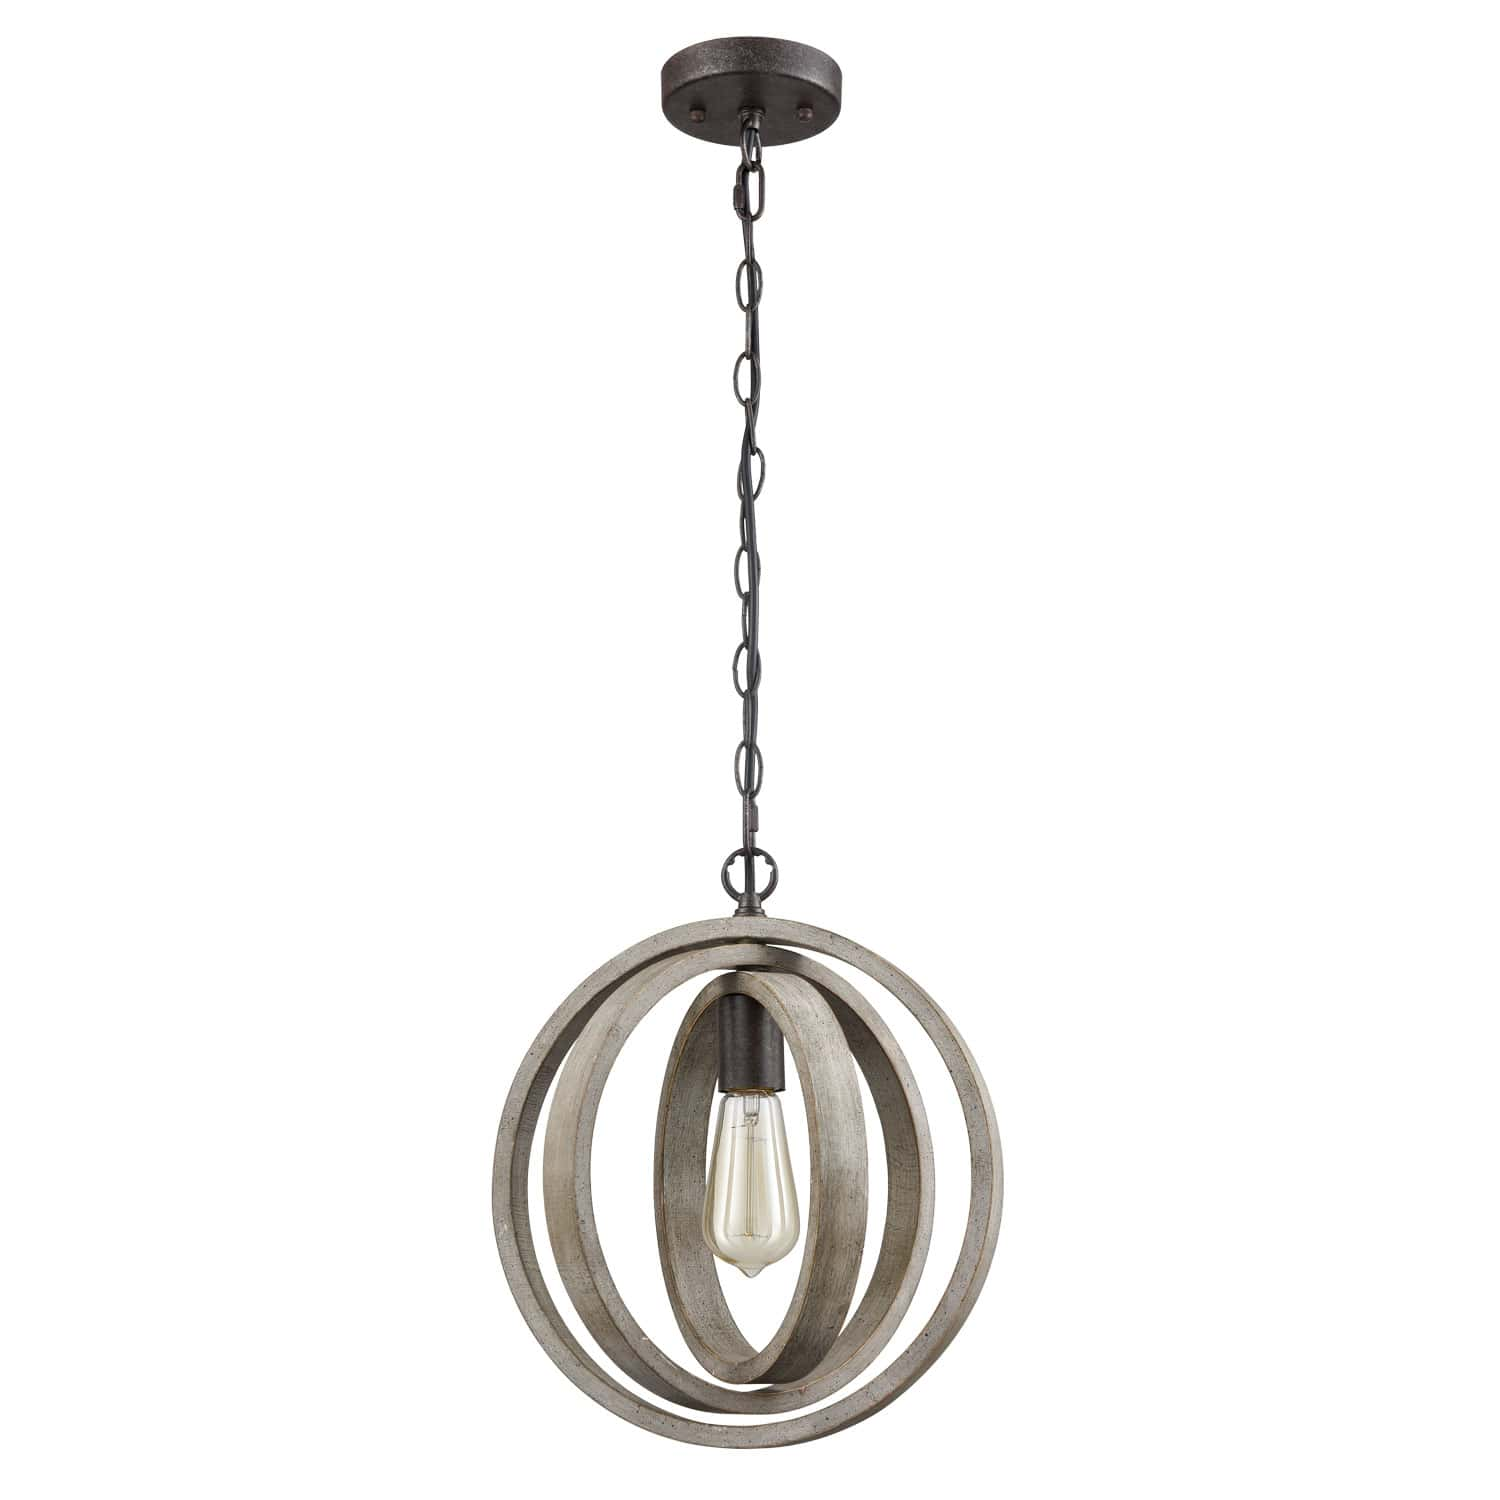 Rustic Pendant Chandelier with Globe Wood Shade - 1 Light